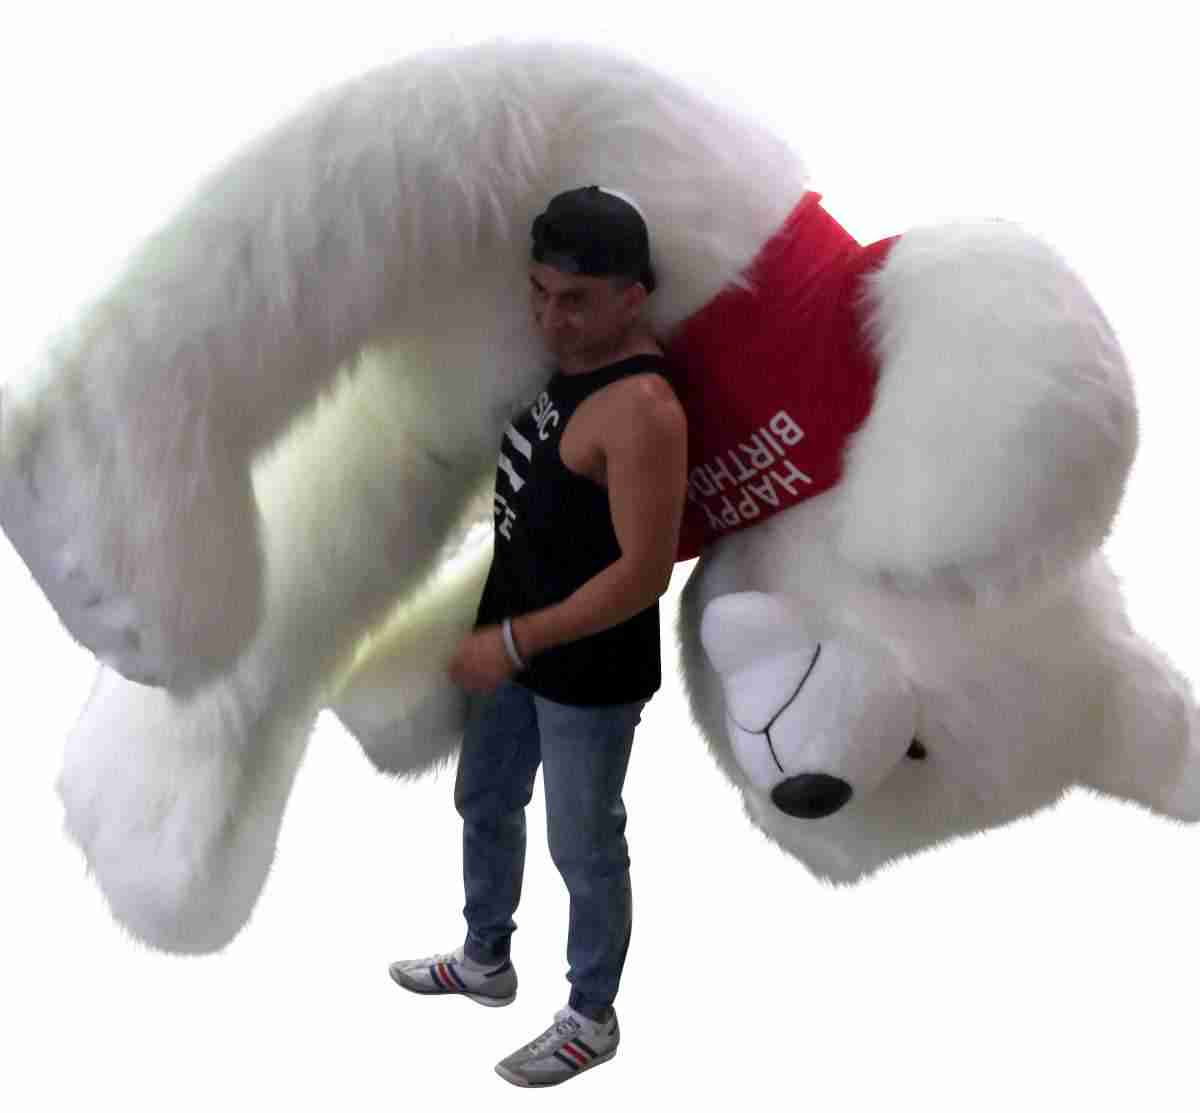 This is a photo of one of Big Plush's insanely large size giant teddy bears. It measures eight feet tall and is wearing a custom personalized t-shirt that says Happy Birthday.